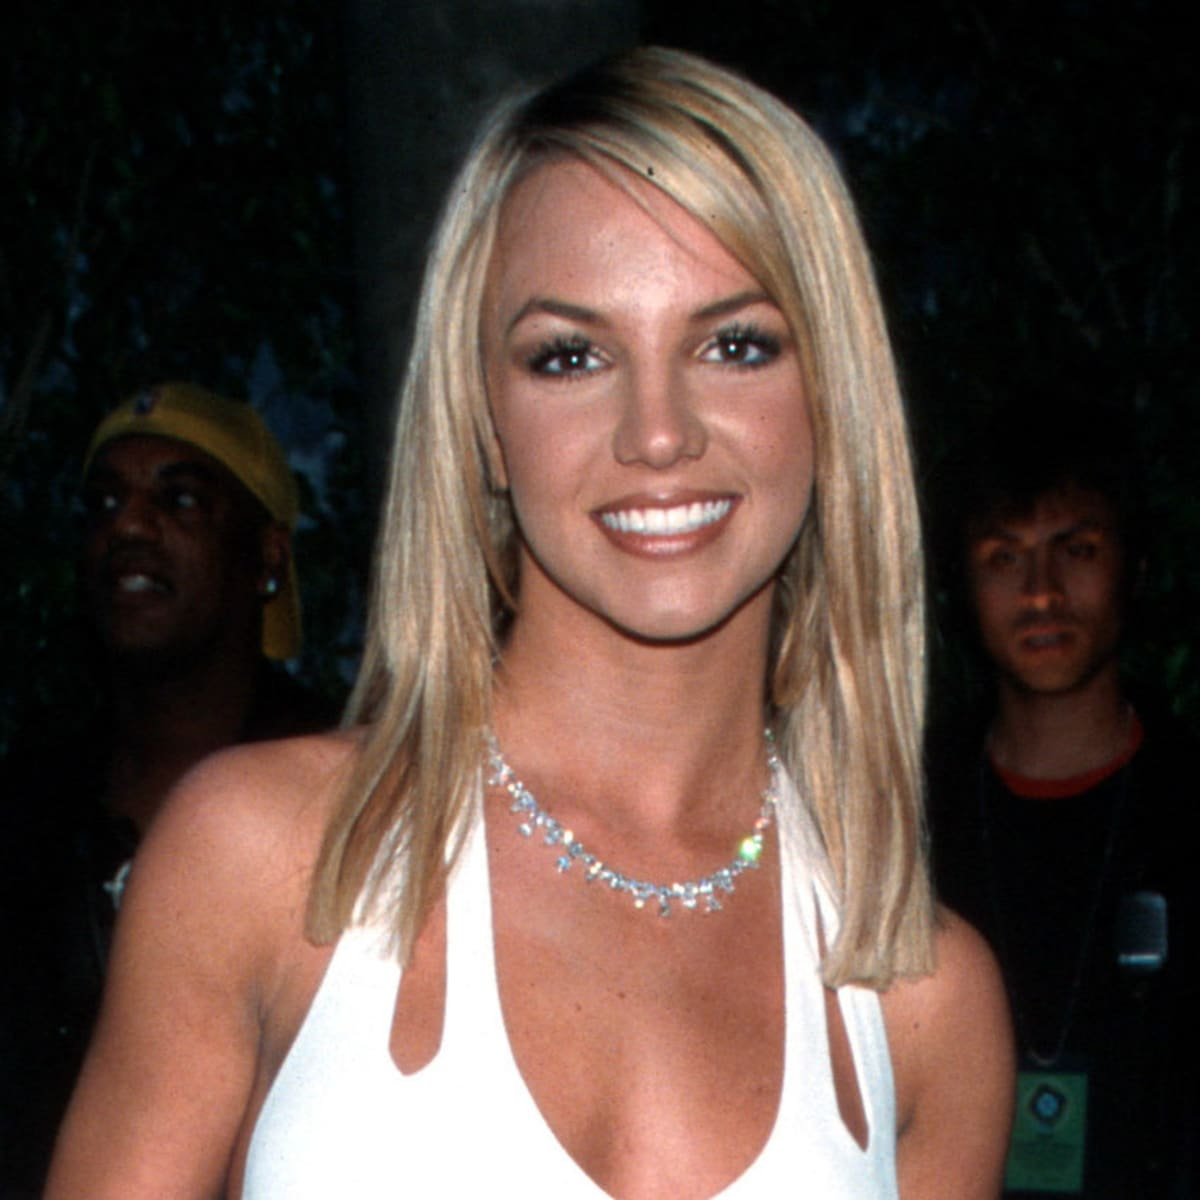 Great Outfits In Fashion History Britney Spears At The 2000 Grammy Awards Fashionista